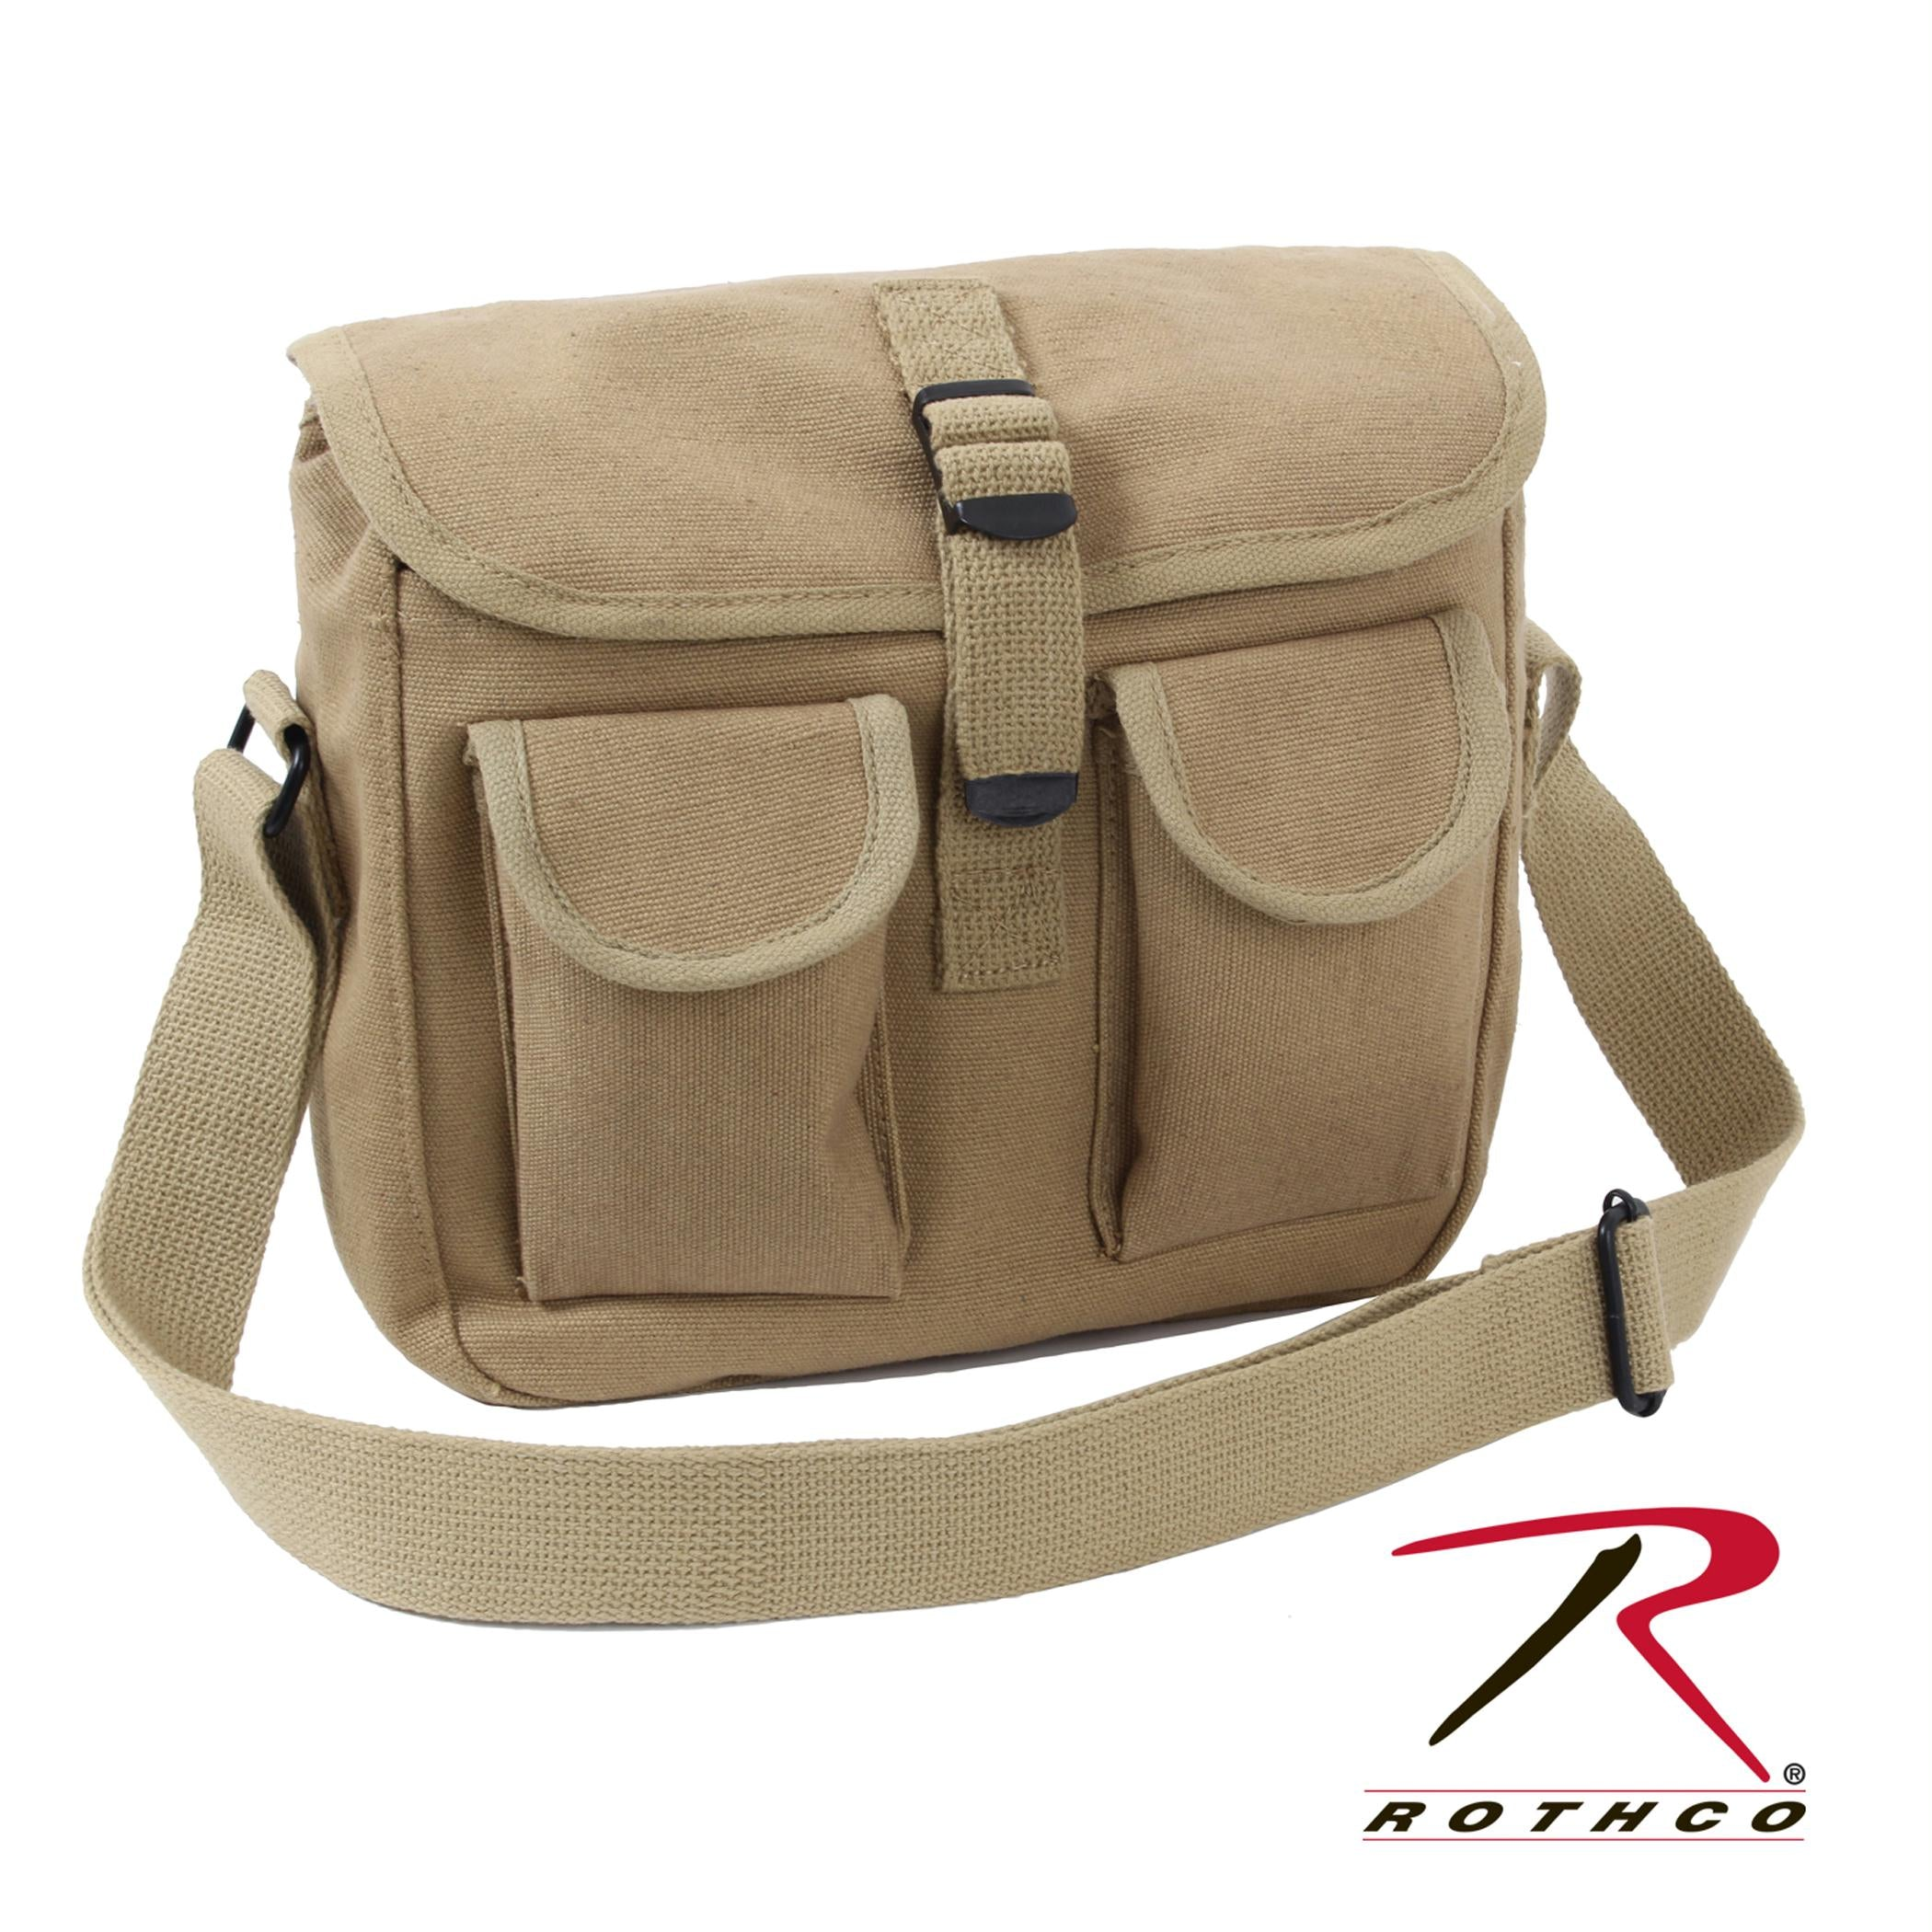 Rothco Canvas Ammo Shoulder Bag - Khaki